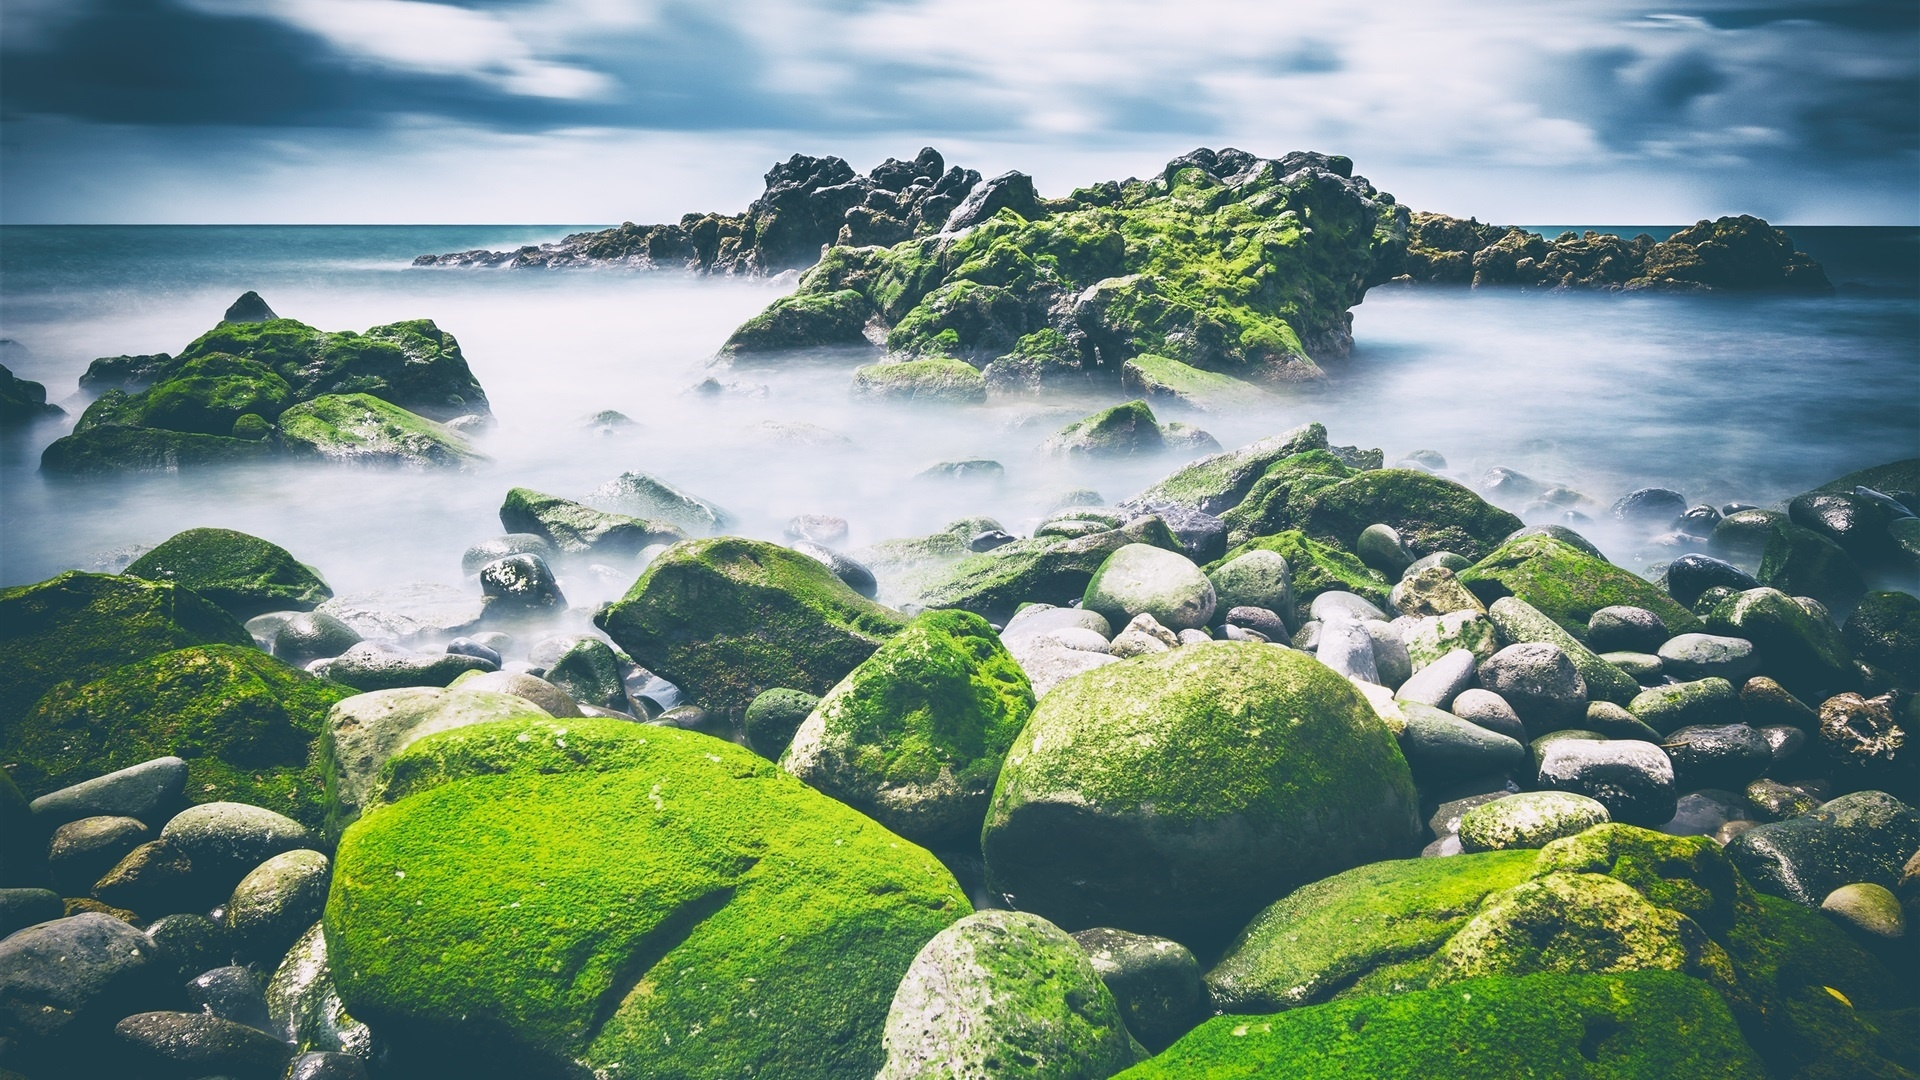 Stones And Moss Pic